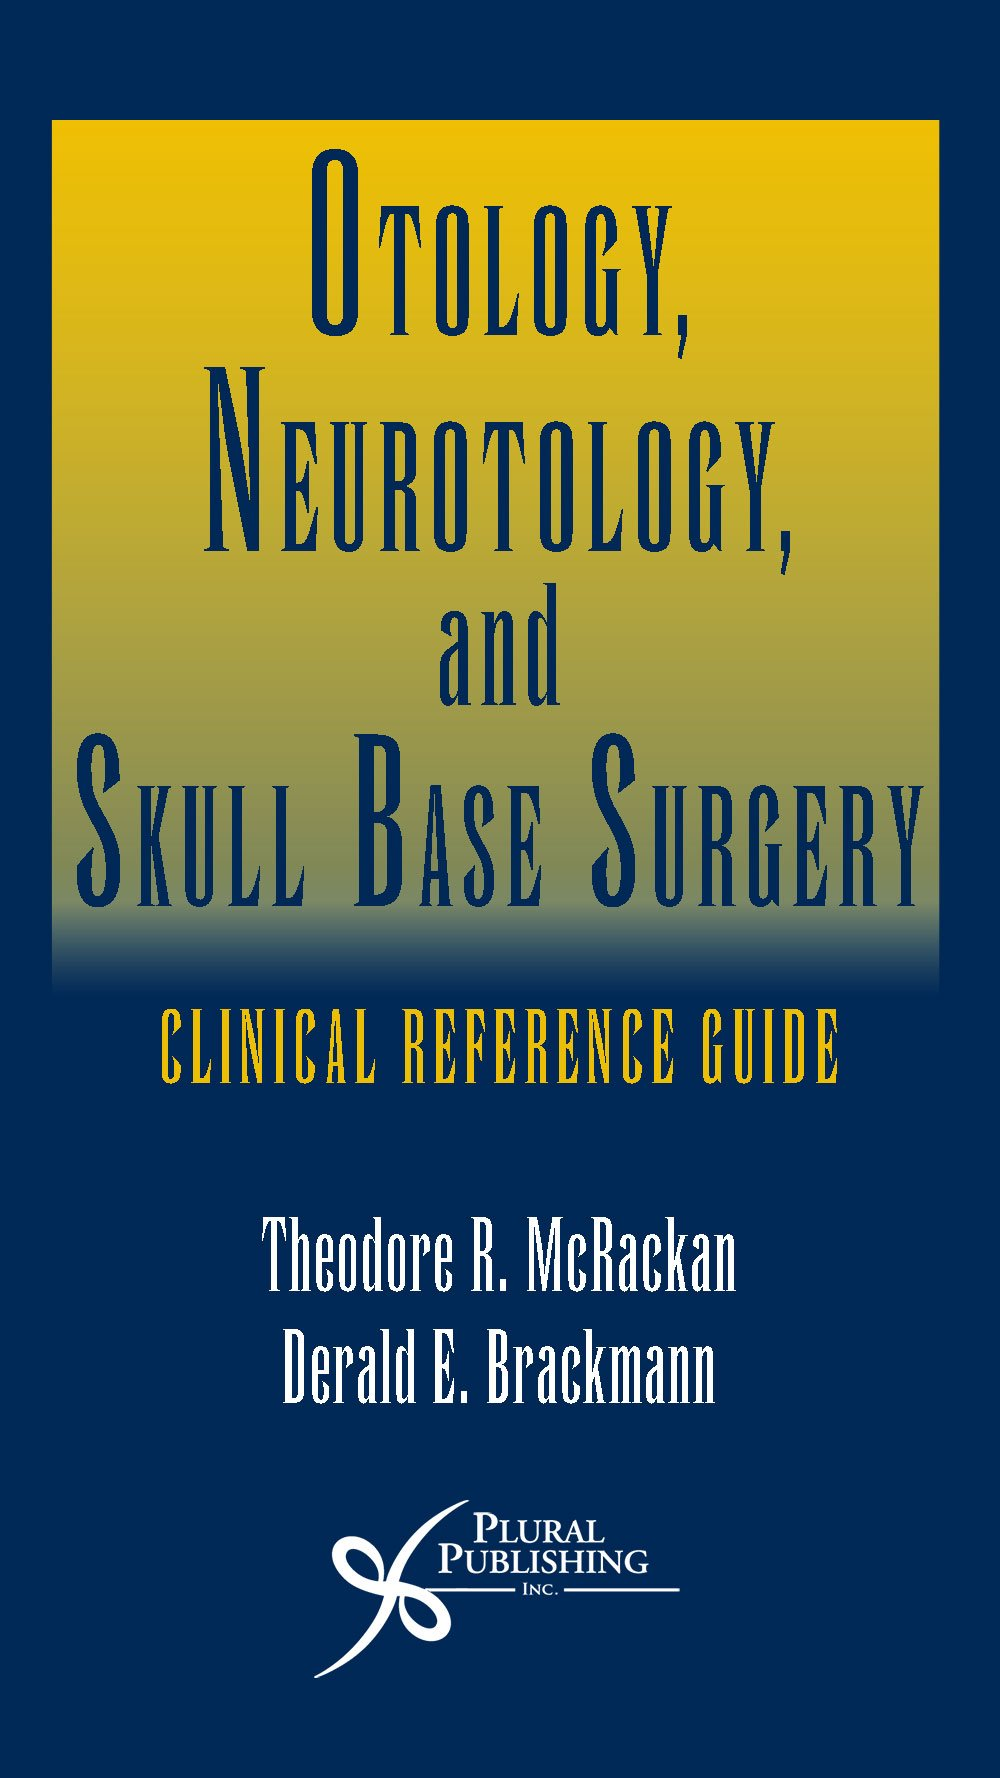 Otology, Neurotology, and Skull Base Surgery: Clinical Reference Guide